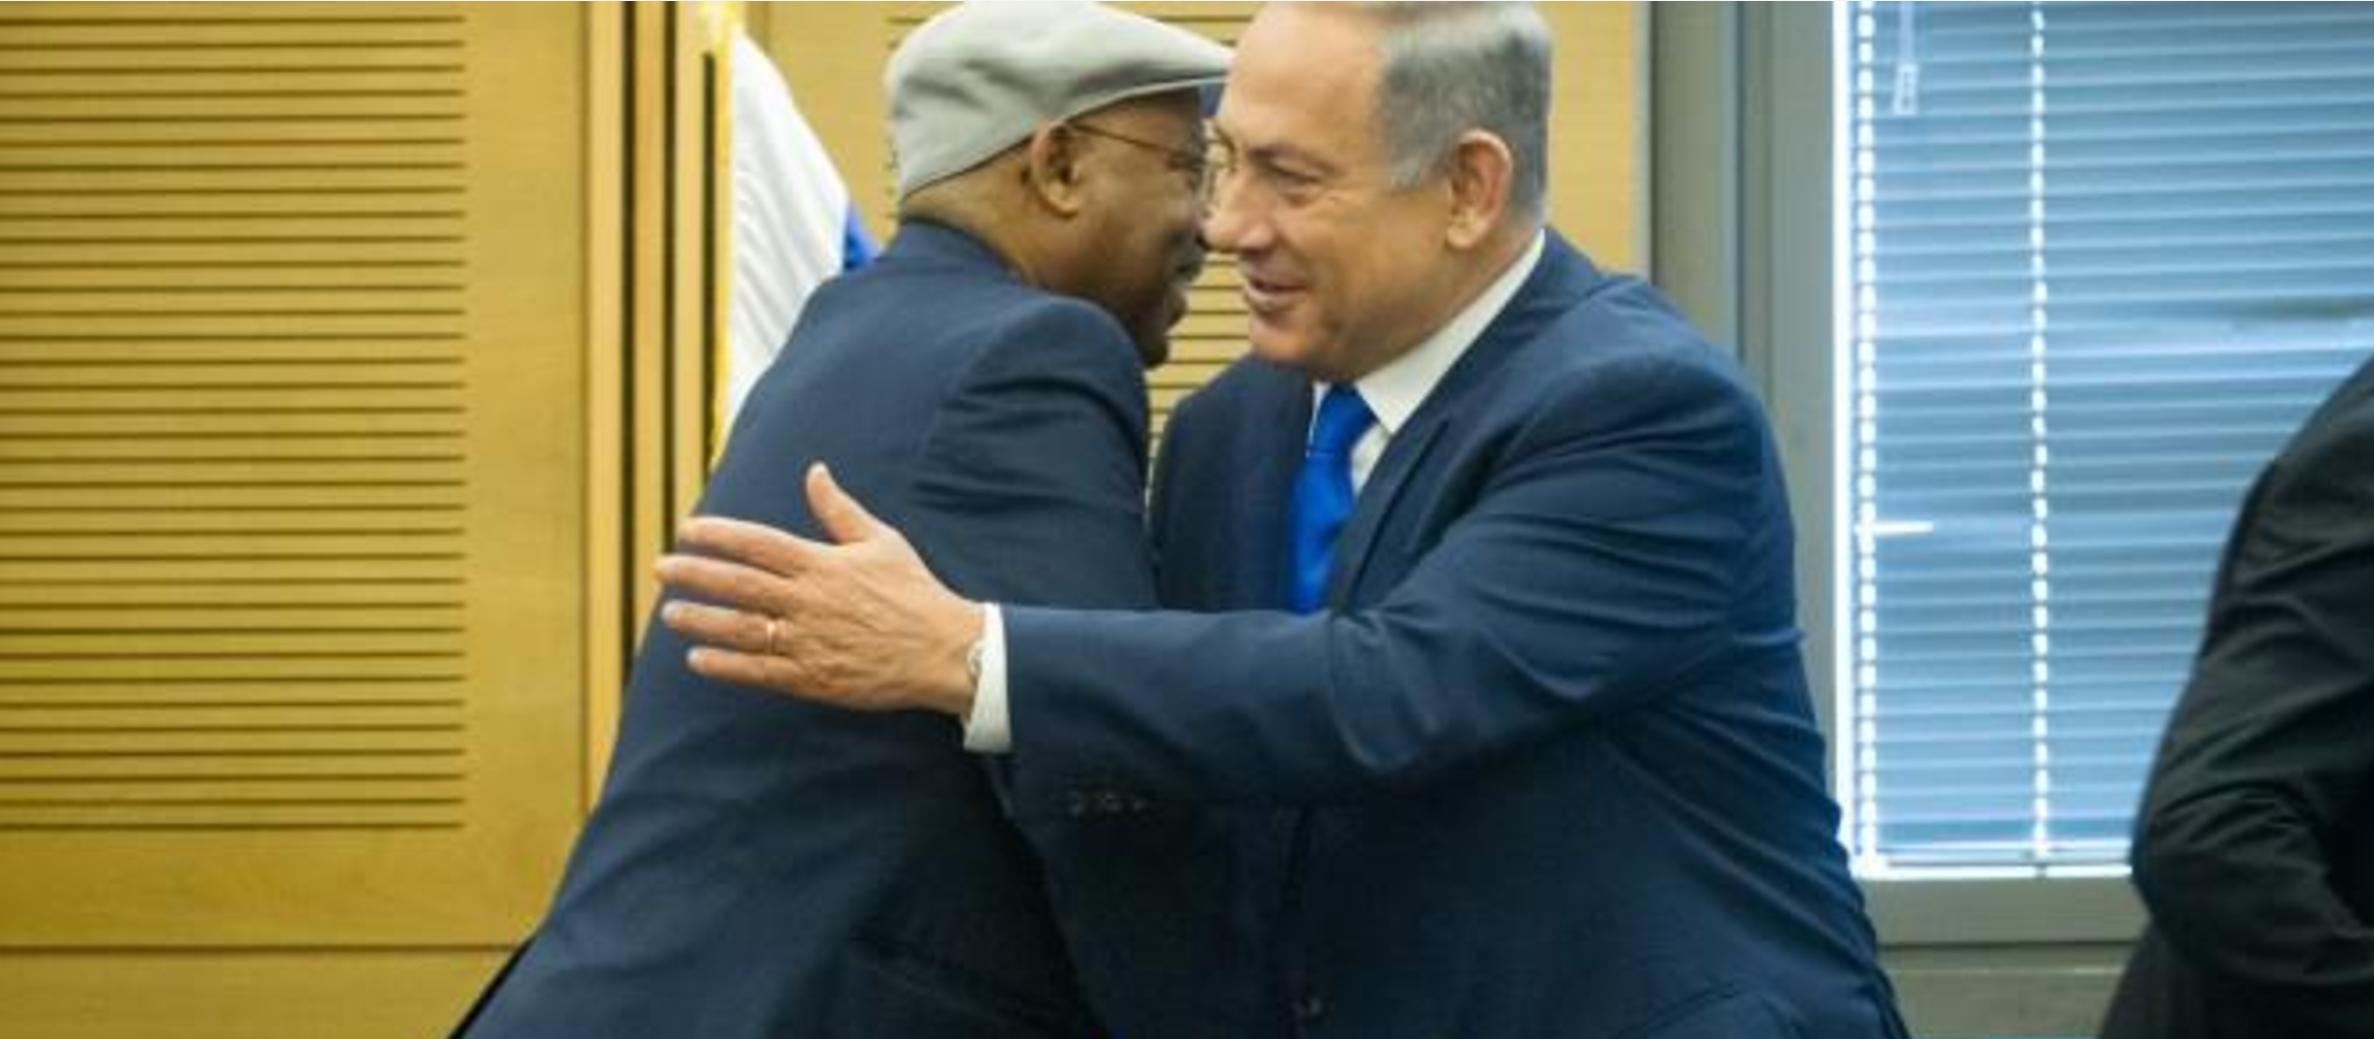 Netanyahu launches initiative to strengthen ties with Africa ahead of trip to Continent